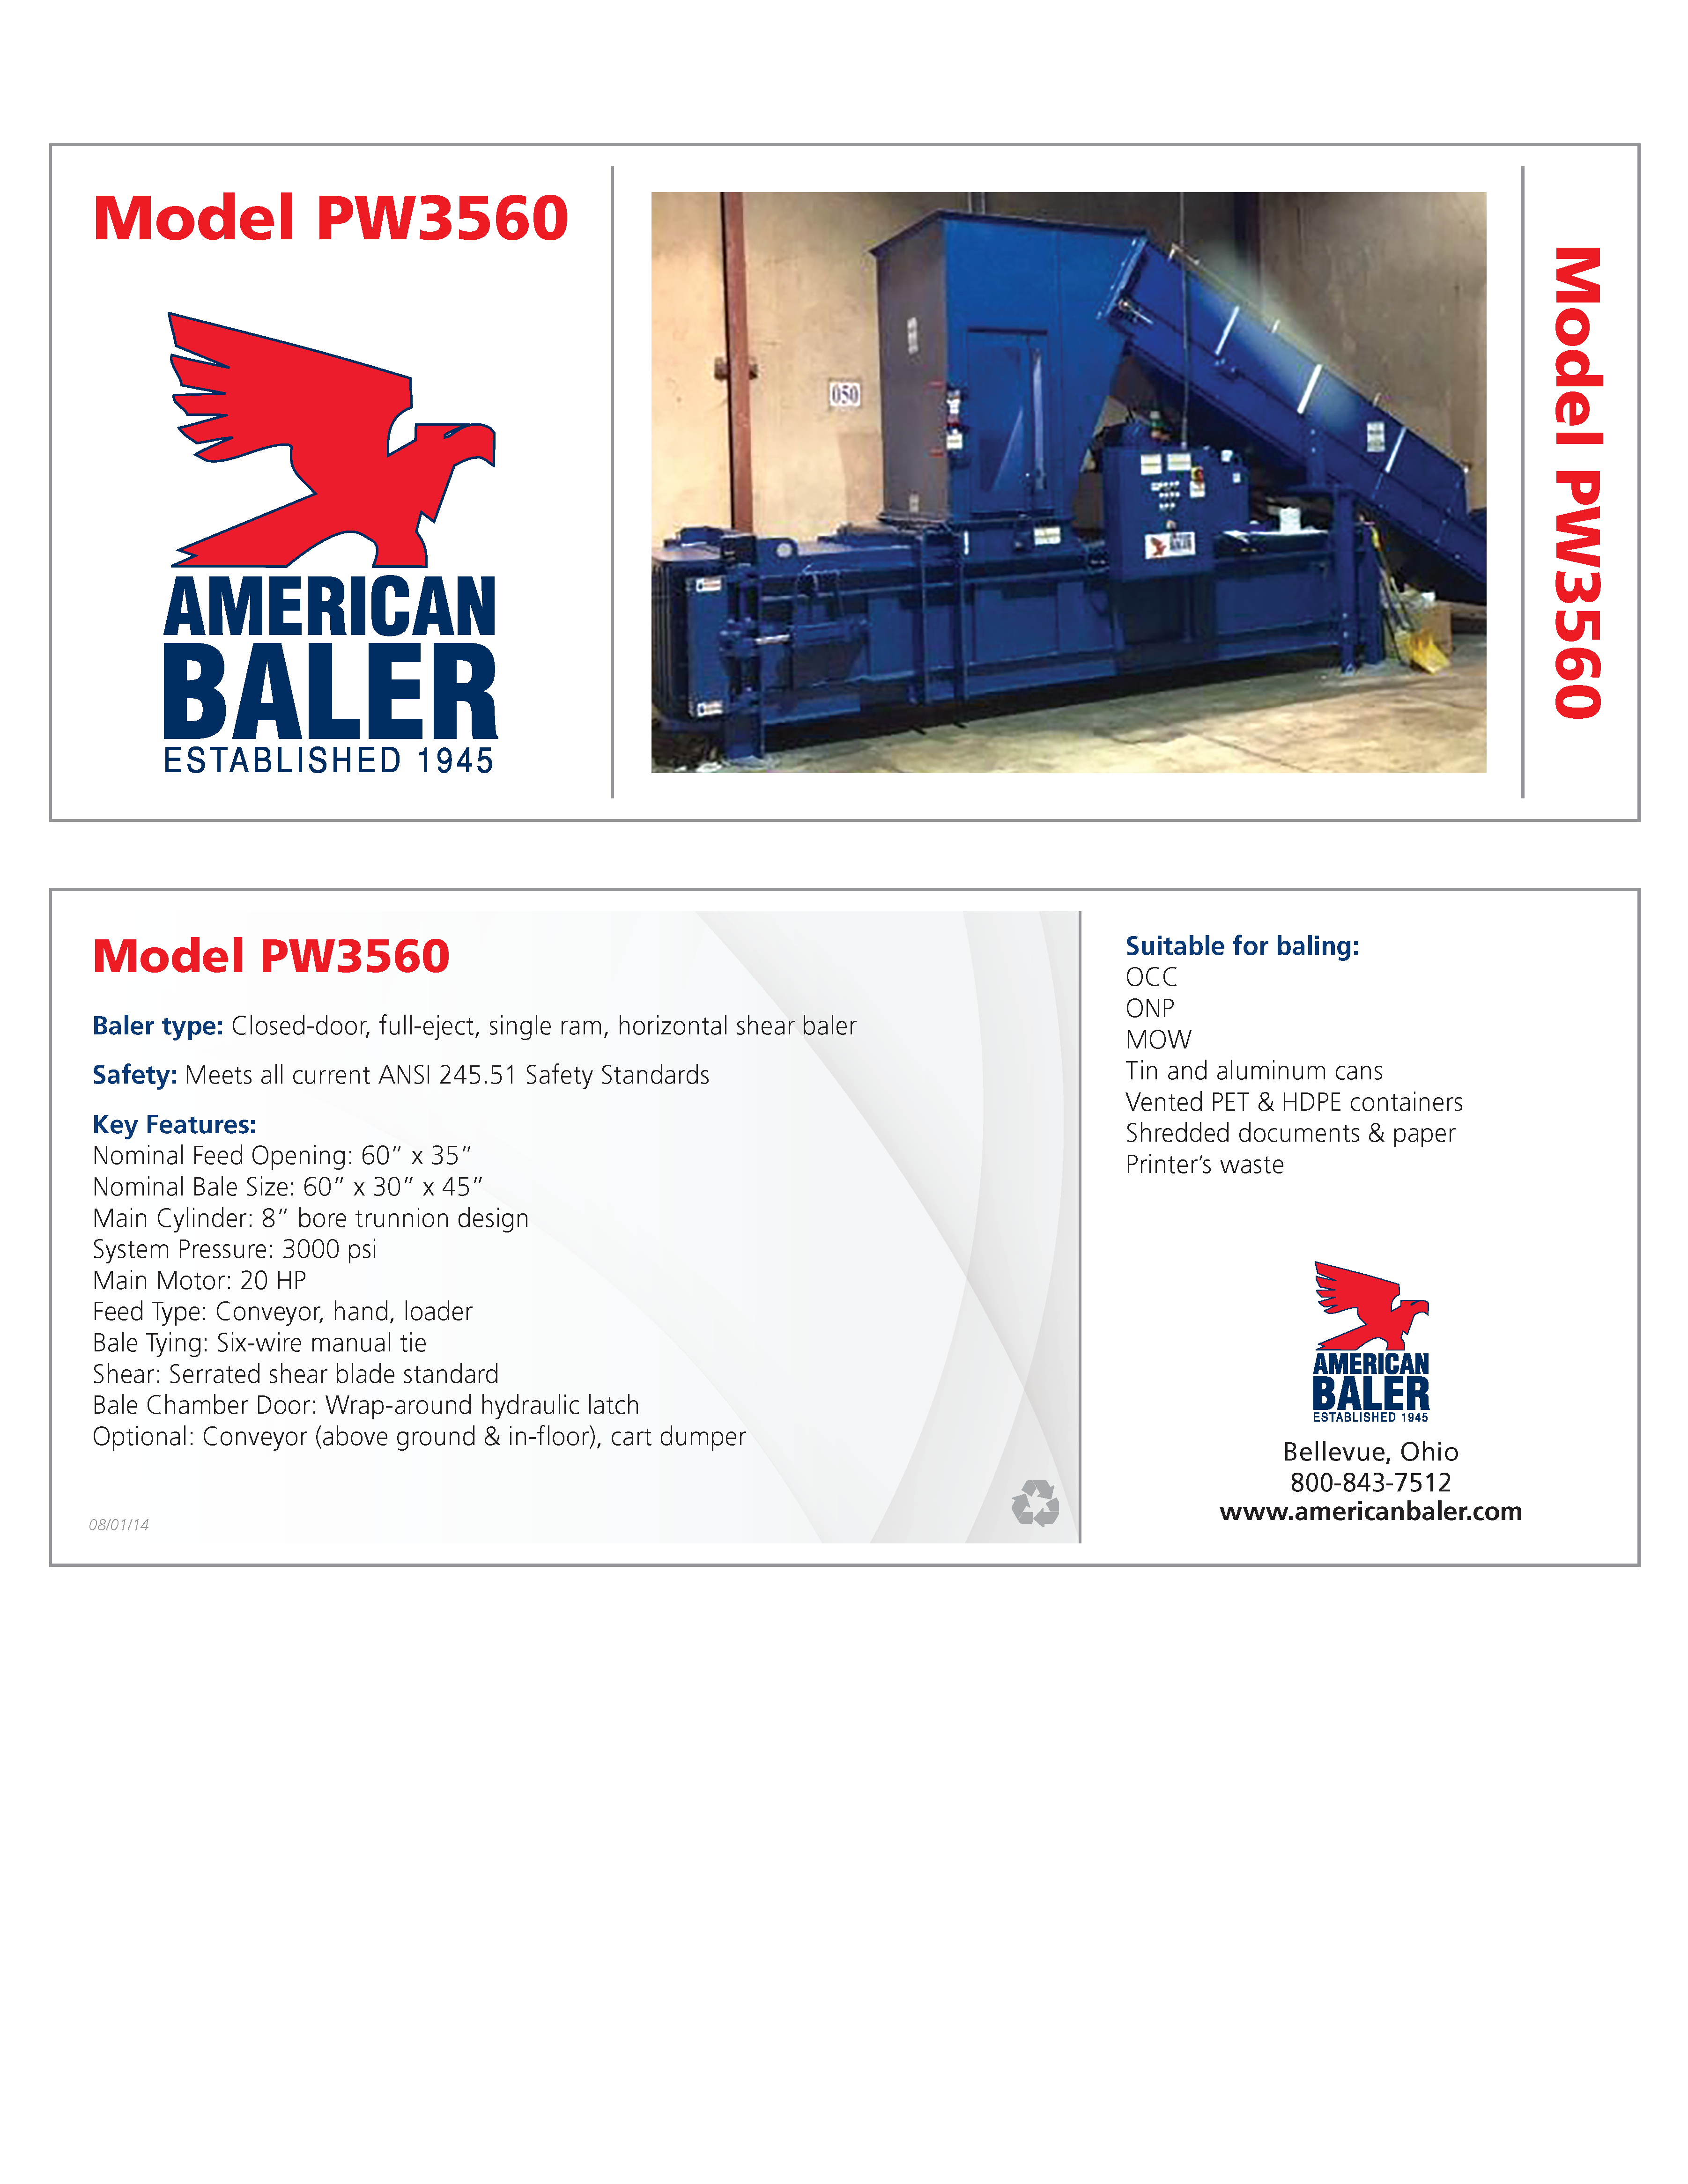 Learn more about the PW3560 Full Eject Manual-Tie Predator Baler in the American Baler Brochure